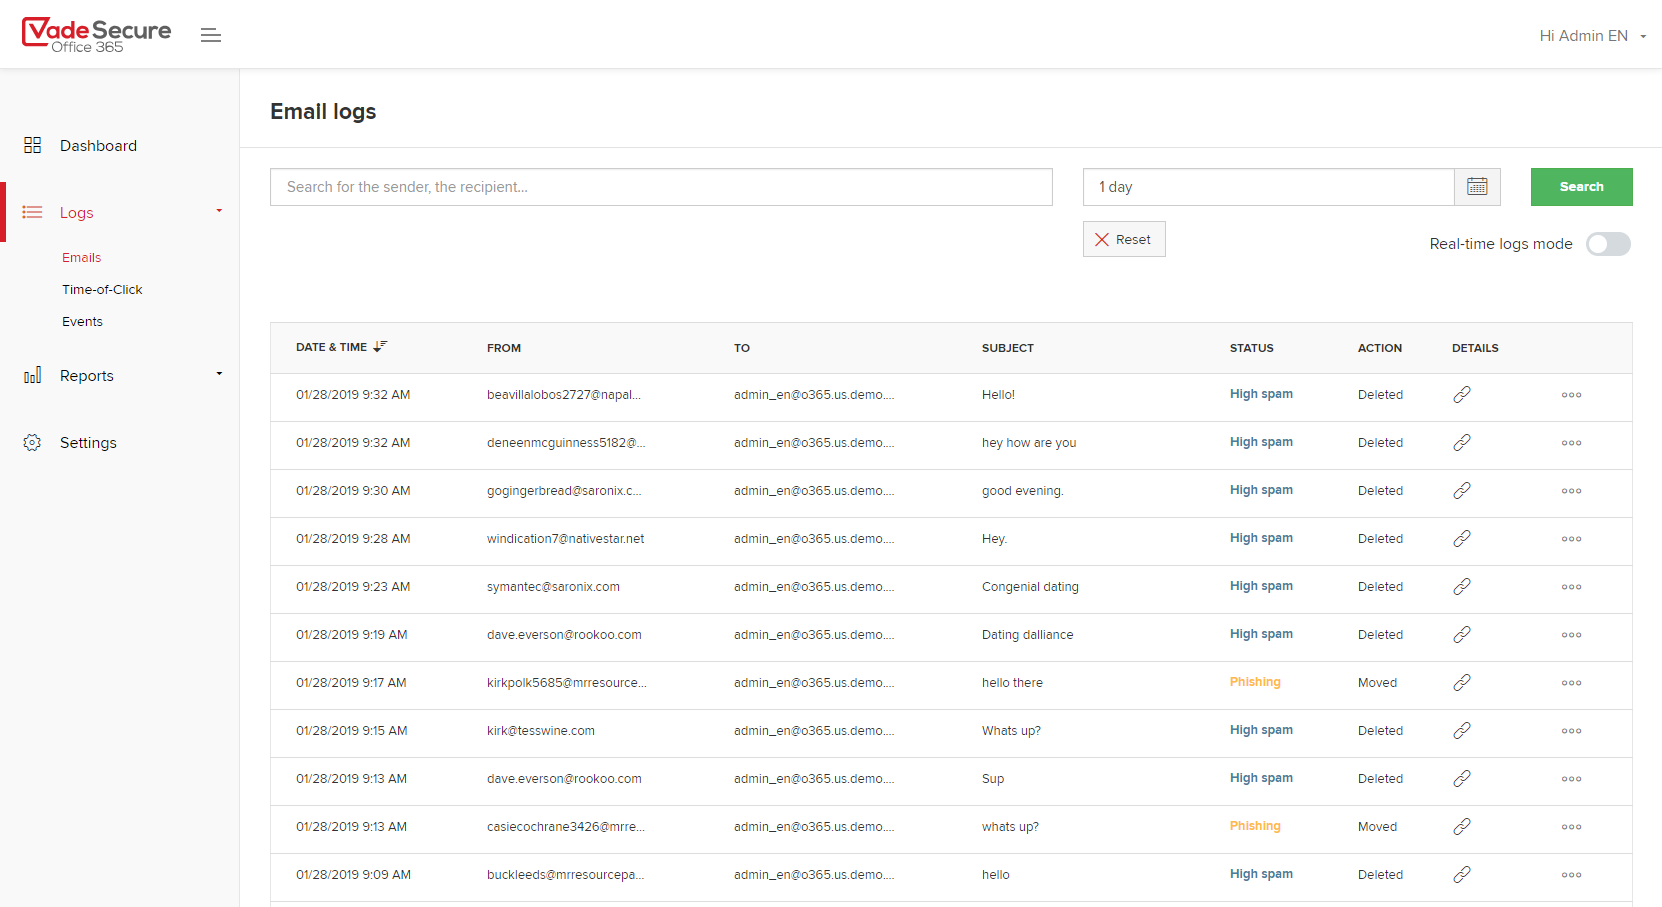 Vade Secure Office 365-Email logs